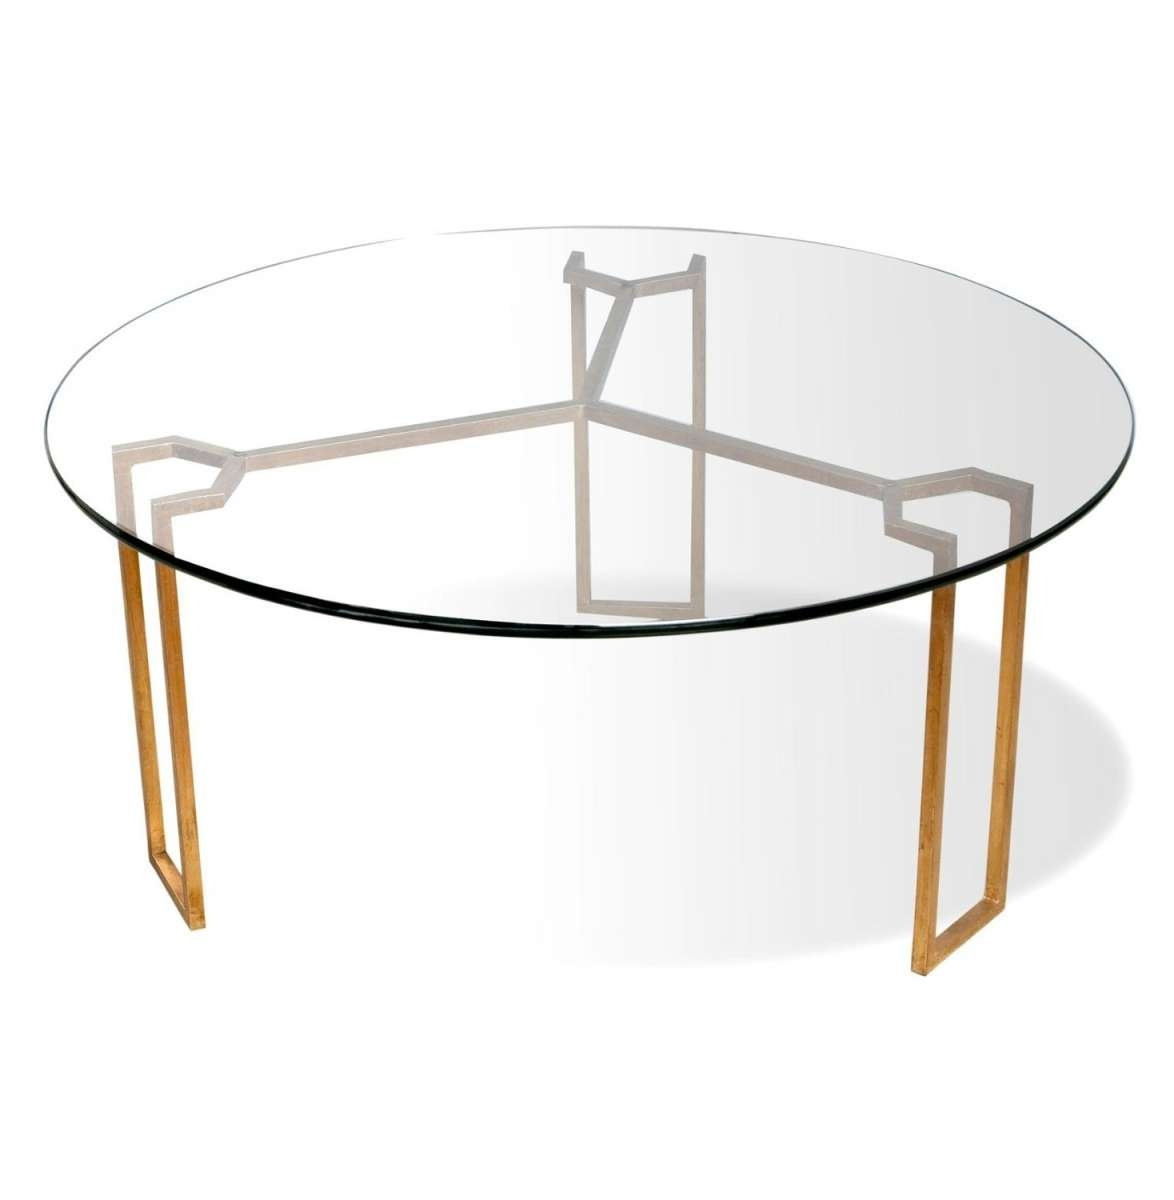 Well Liked Circular Glass Coffee Tables Throughout Small Round Coffee Tables (View 19 of 20)